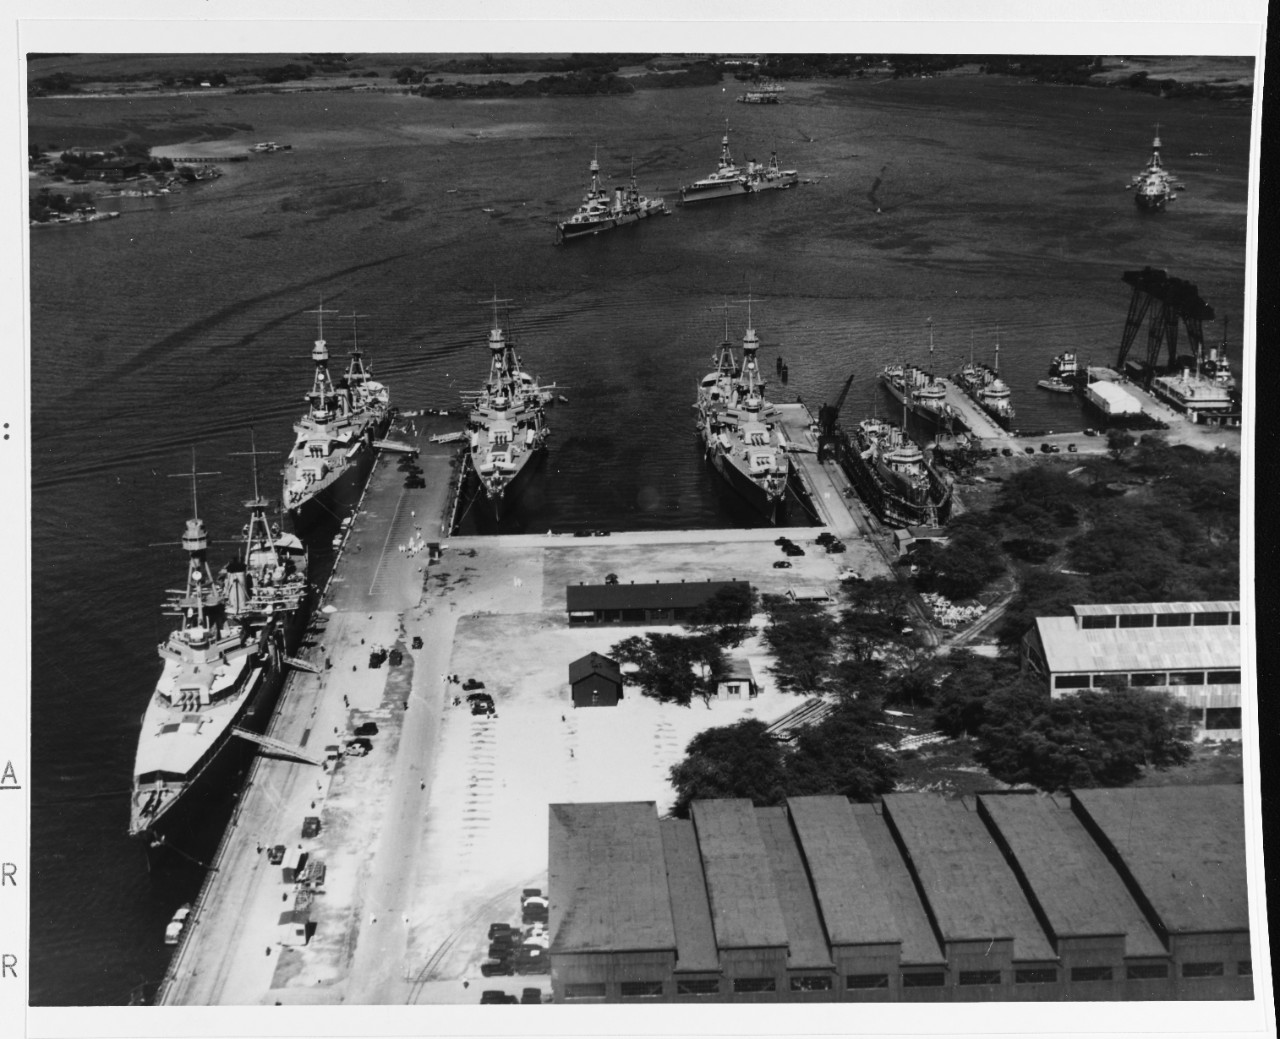 Scouting Force ships at, and off, Pearl Harbor Navy Yard, T.H., 2 February 1933. The heavy cruisers tied up at 1010 Dock are (from left to left center) Augusta (CA-31), Chicago (CA-29) and Chester (CA-27). Northampton lies alongside the dock in the center, with Kane (DD-235) in the adjacent Marine Railway and Fox (DD-234) berthed nearby. Louisville is in the center distance. Moored off her bow and at the extreme right are Salt Lake City and Pensacola (CA-24). (U.S. Navy Photograph 80-G-451164, National Archives and Records Administration, Still Pictures Branch, College Park, Md.)